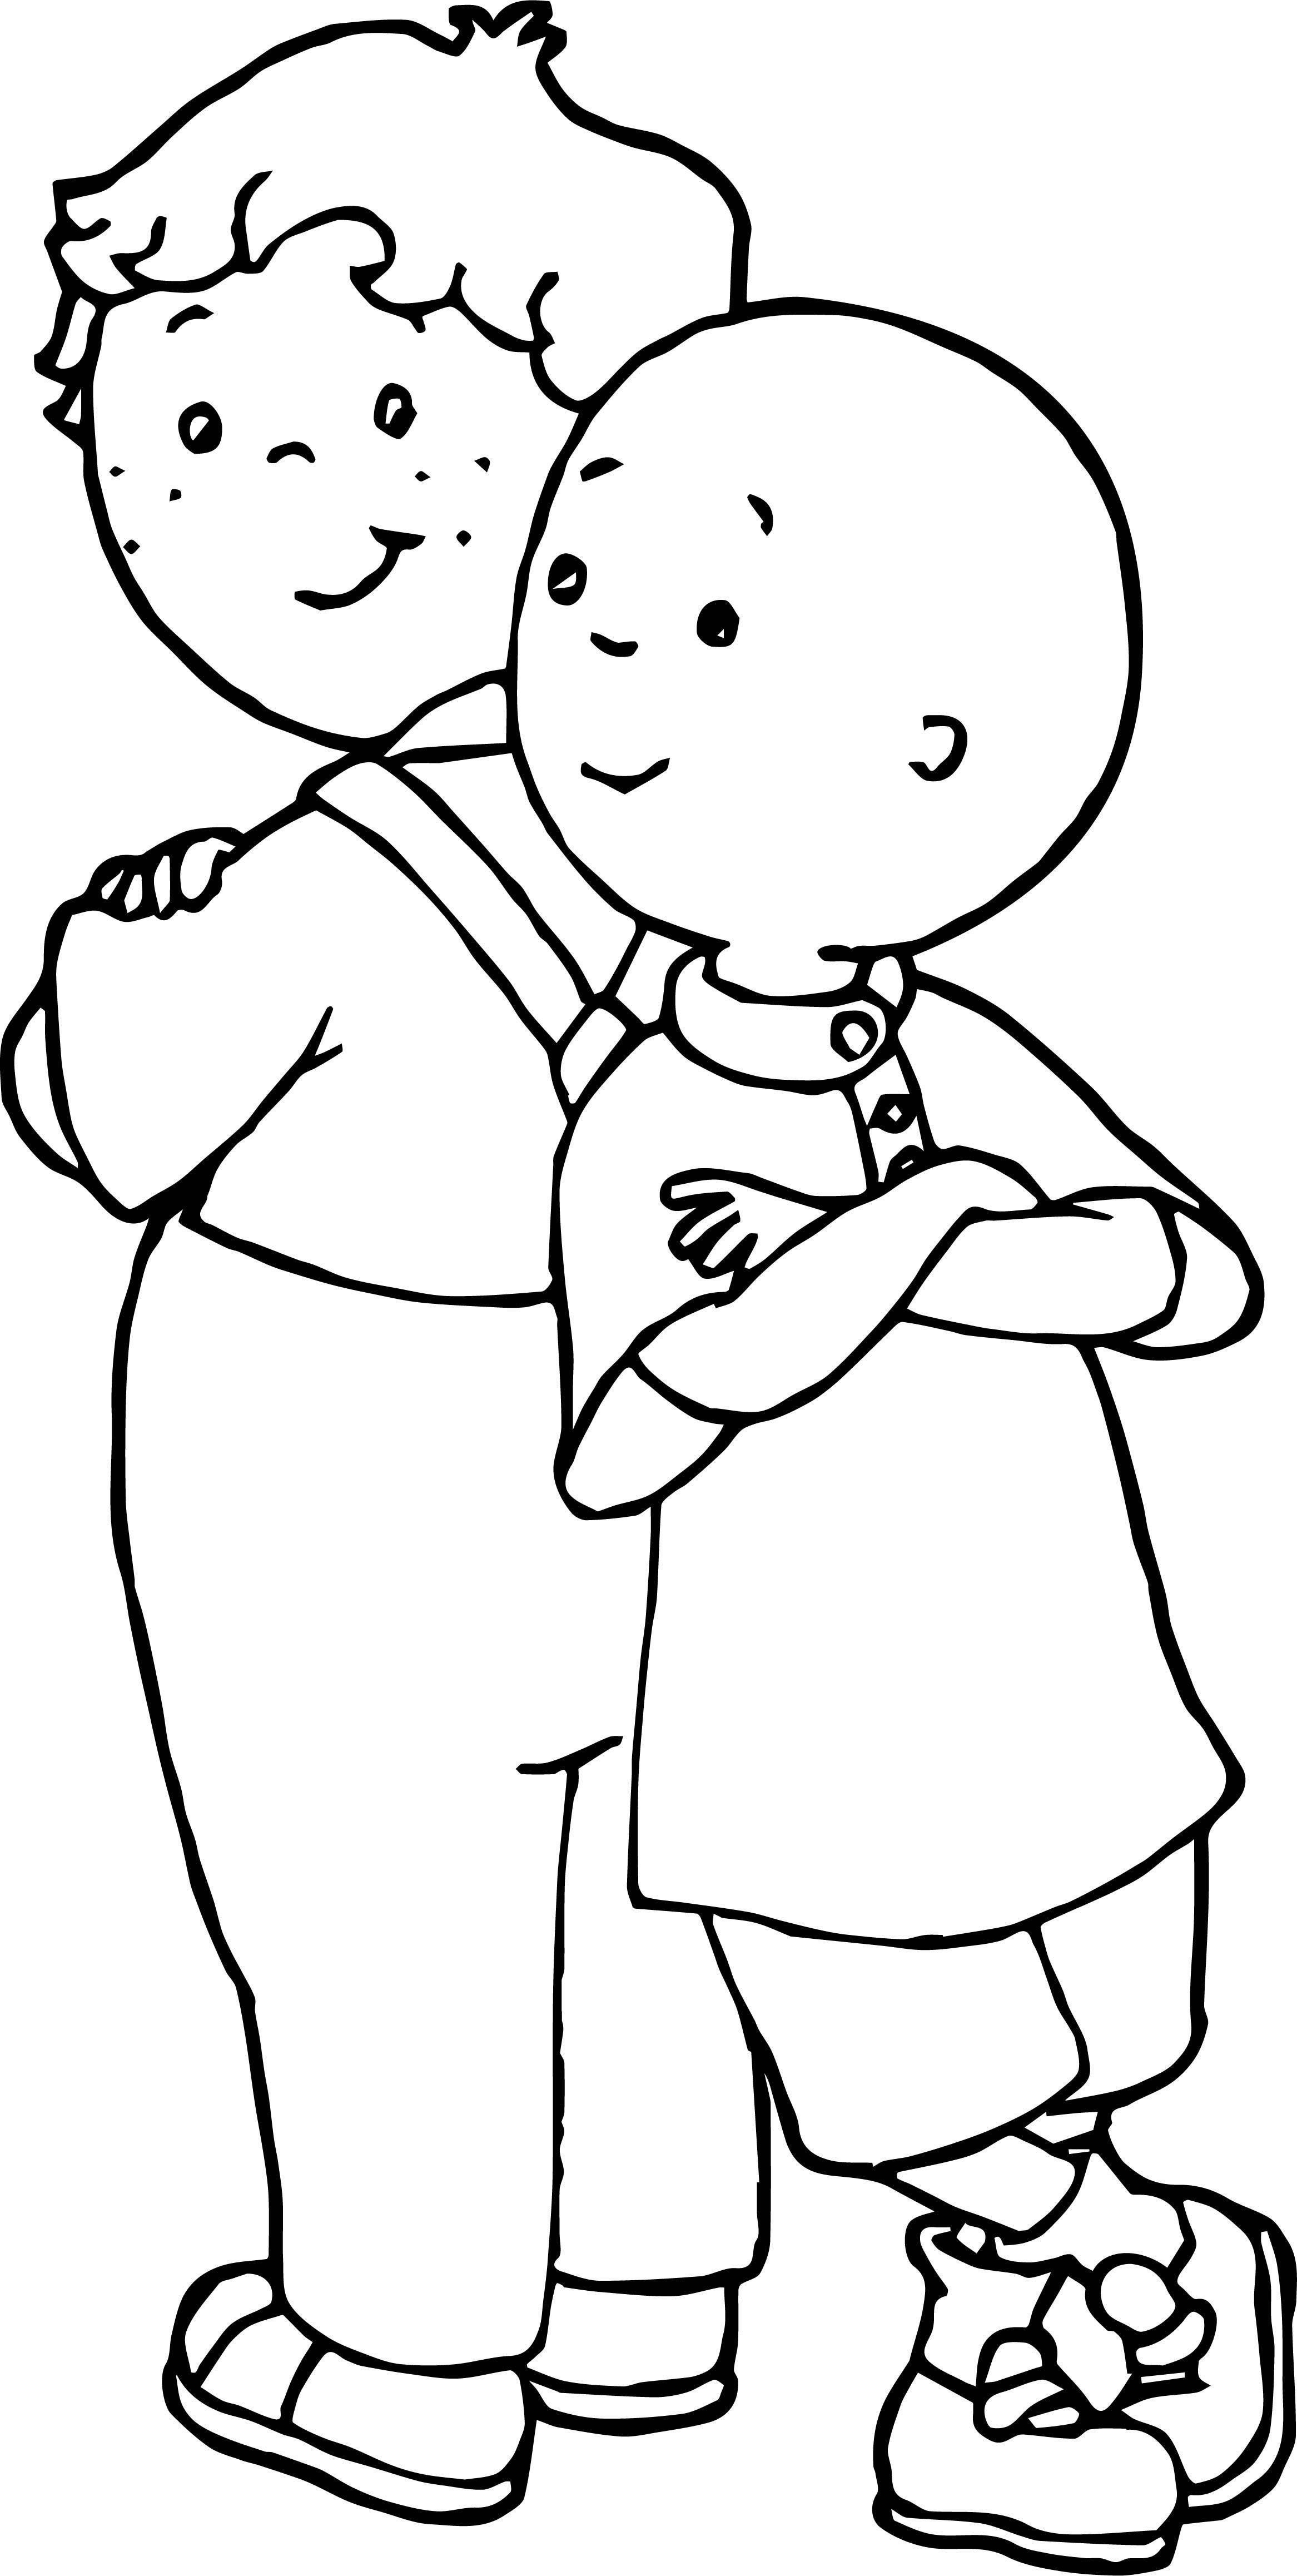 Caillou Friends Coloring Page